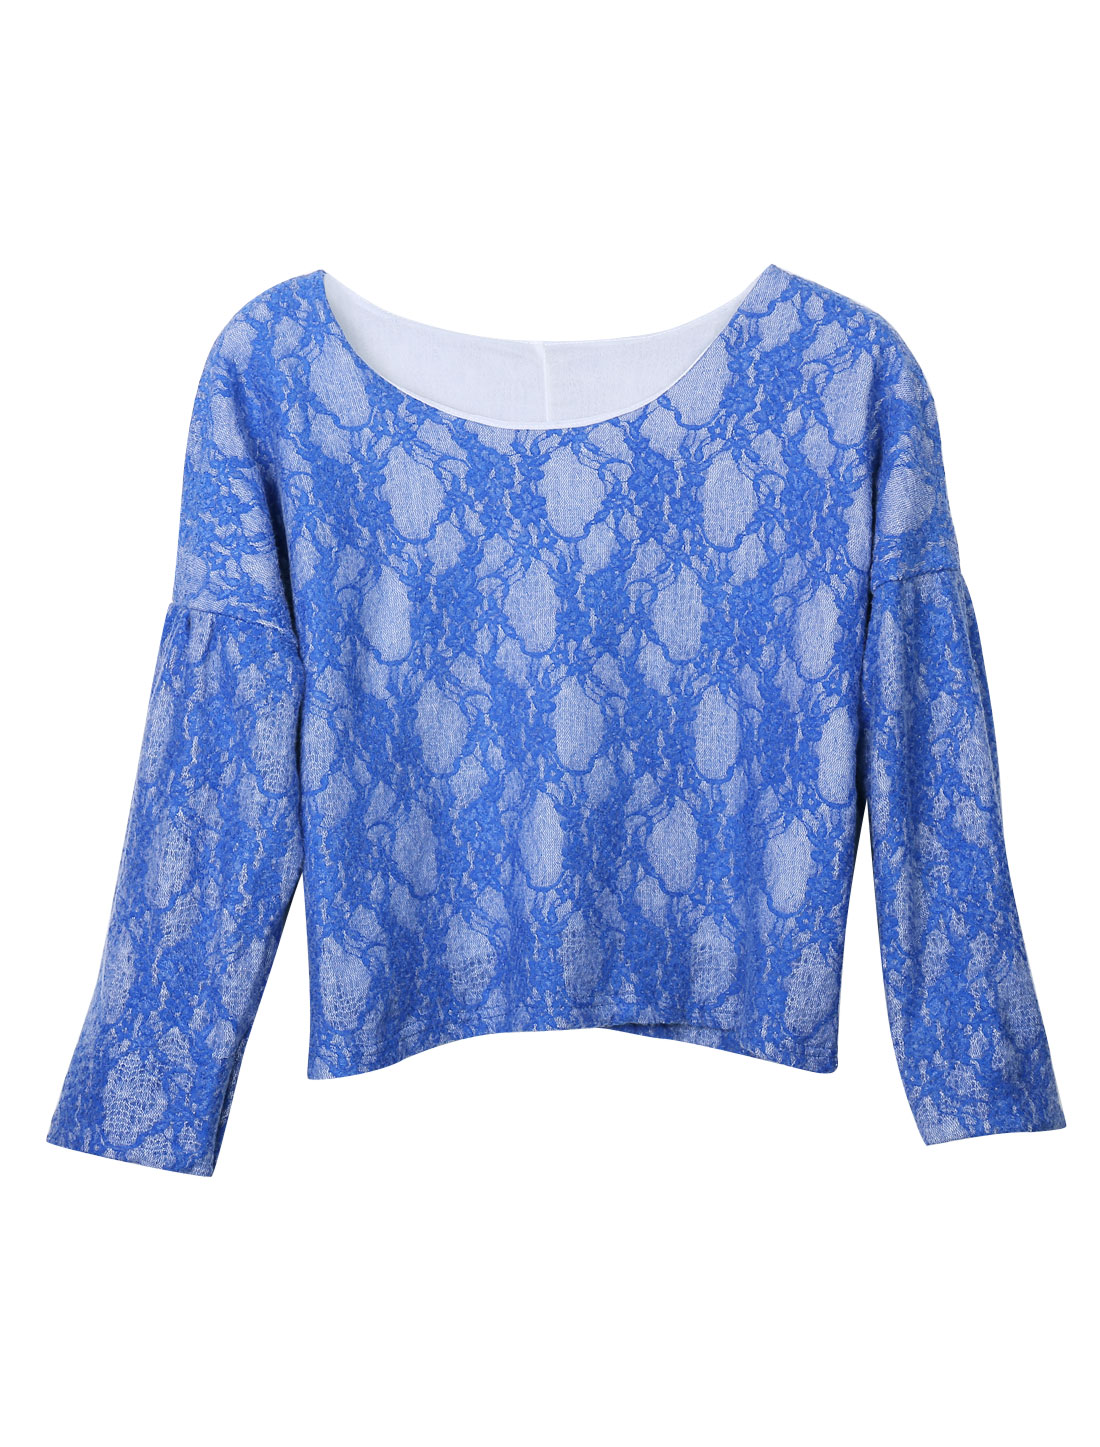 Women Round Neck Bat Sleeves Lace Lined Leisure Top Blue S